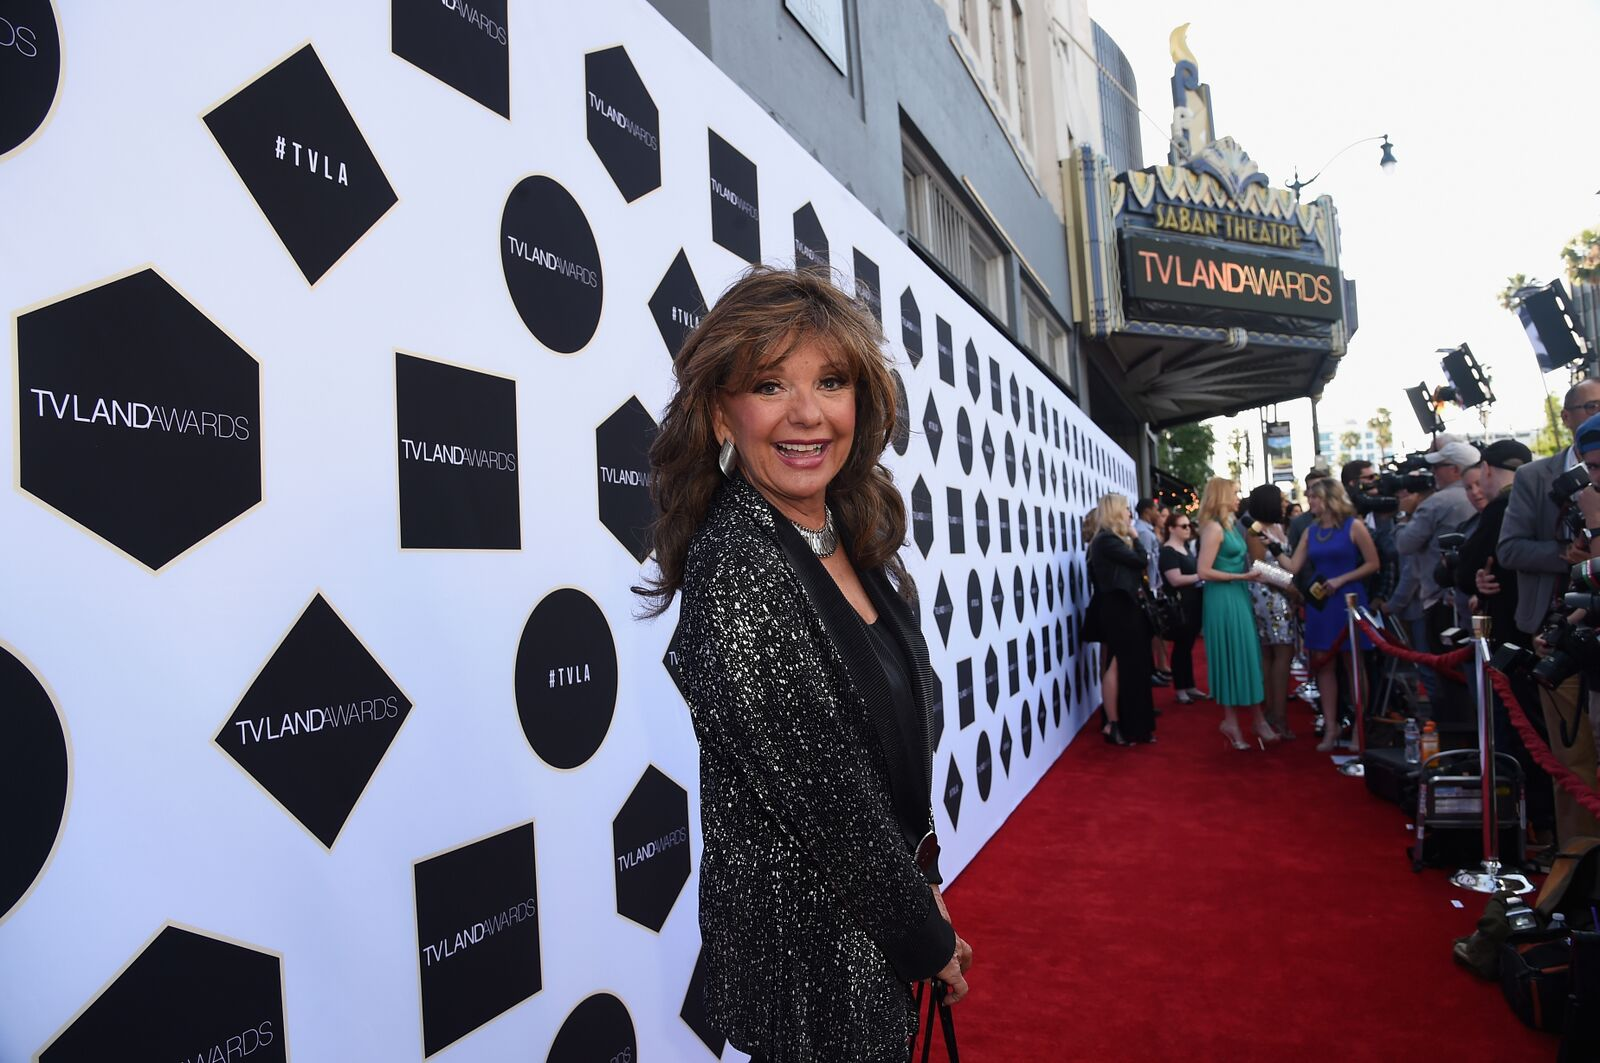 Actress Dawn Wells attends the 2015 TV Land Awards at Saban Theatre on April 11, 2015 in Beverly Hills, California | Photo: Getty Images